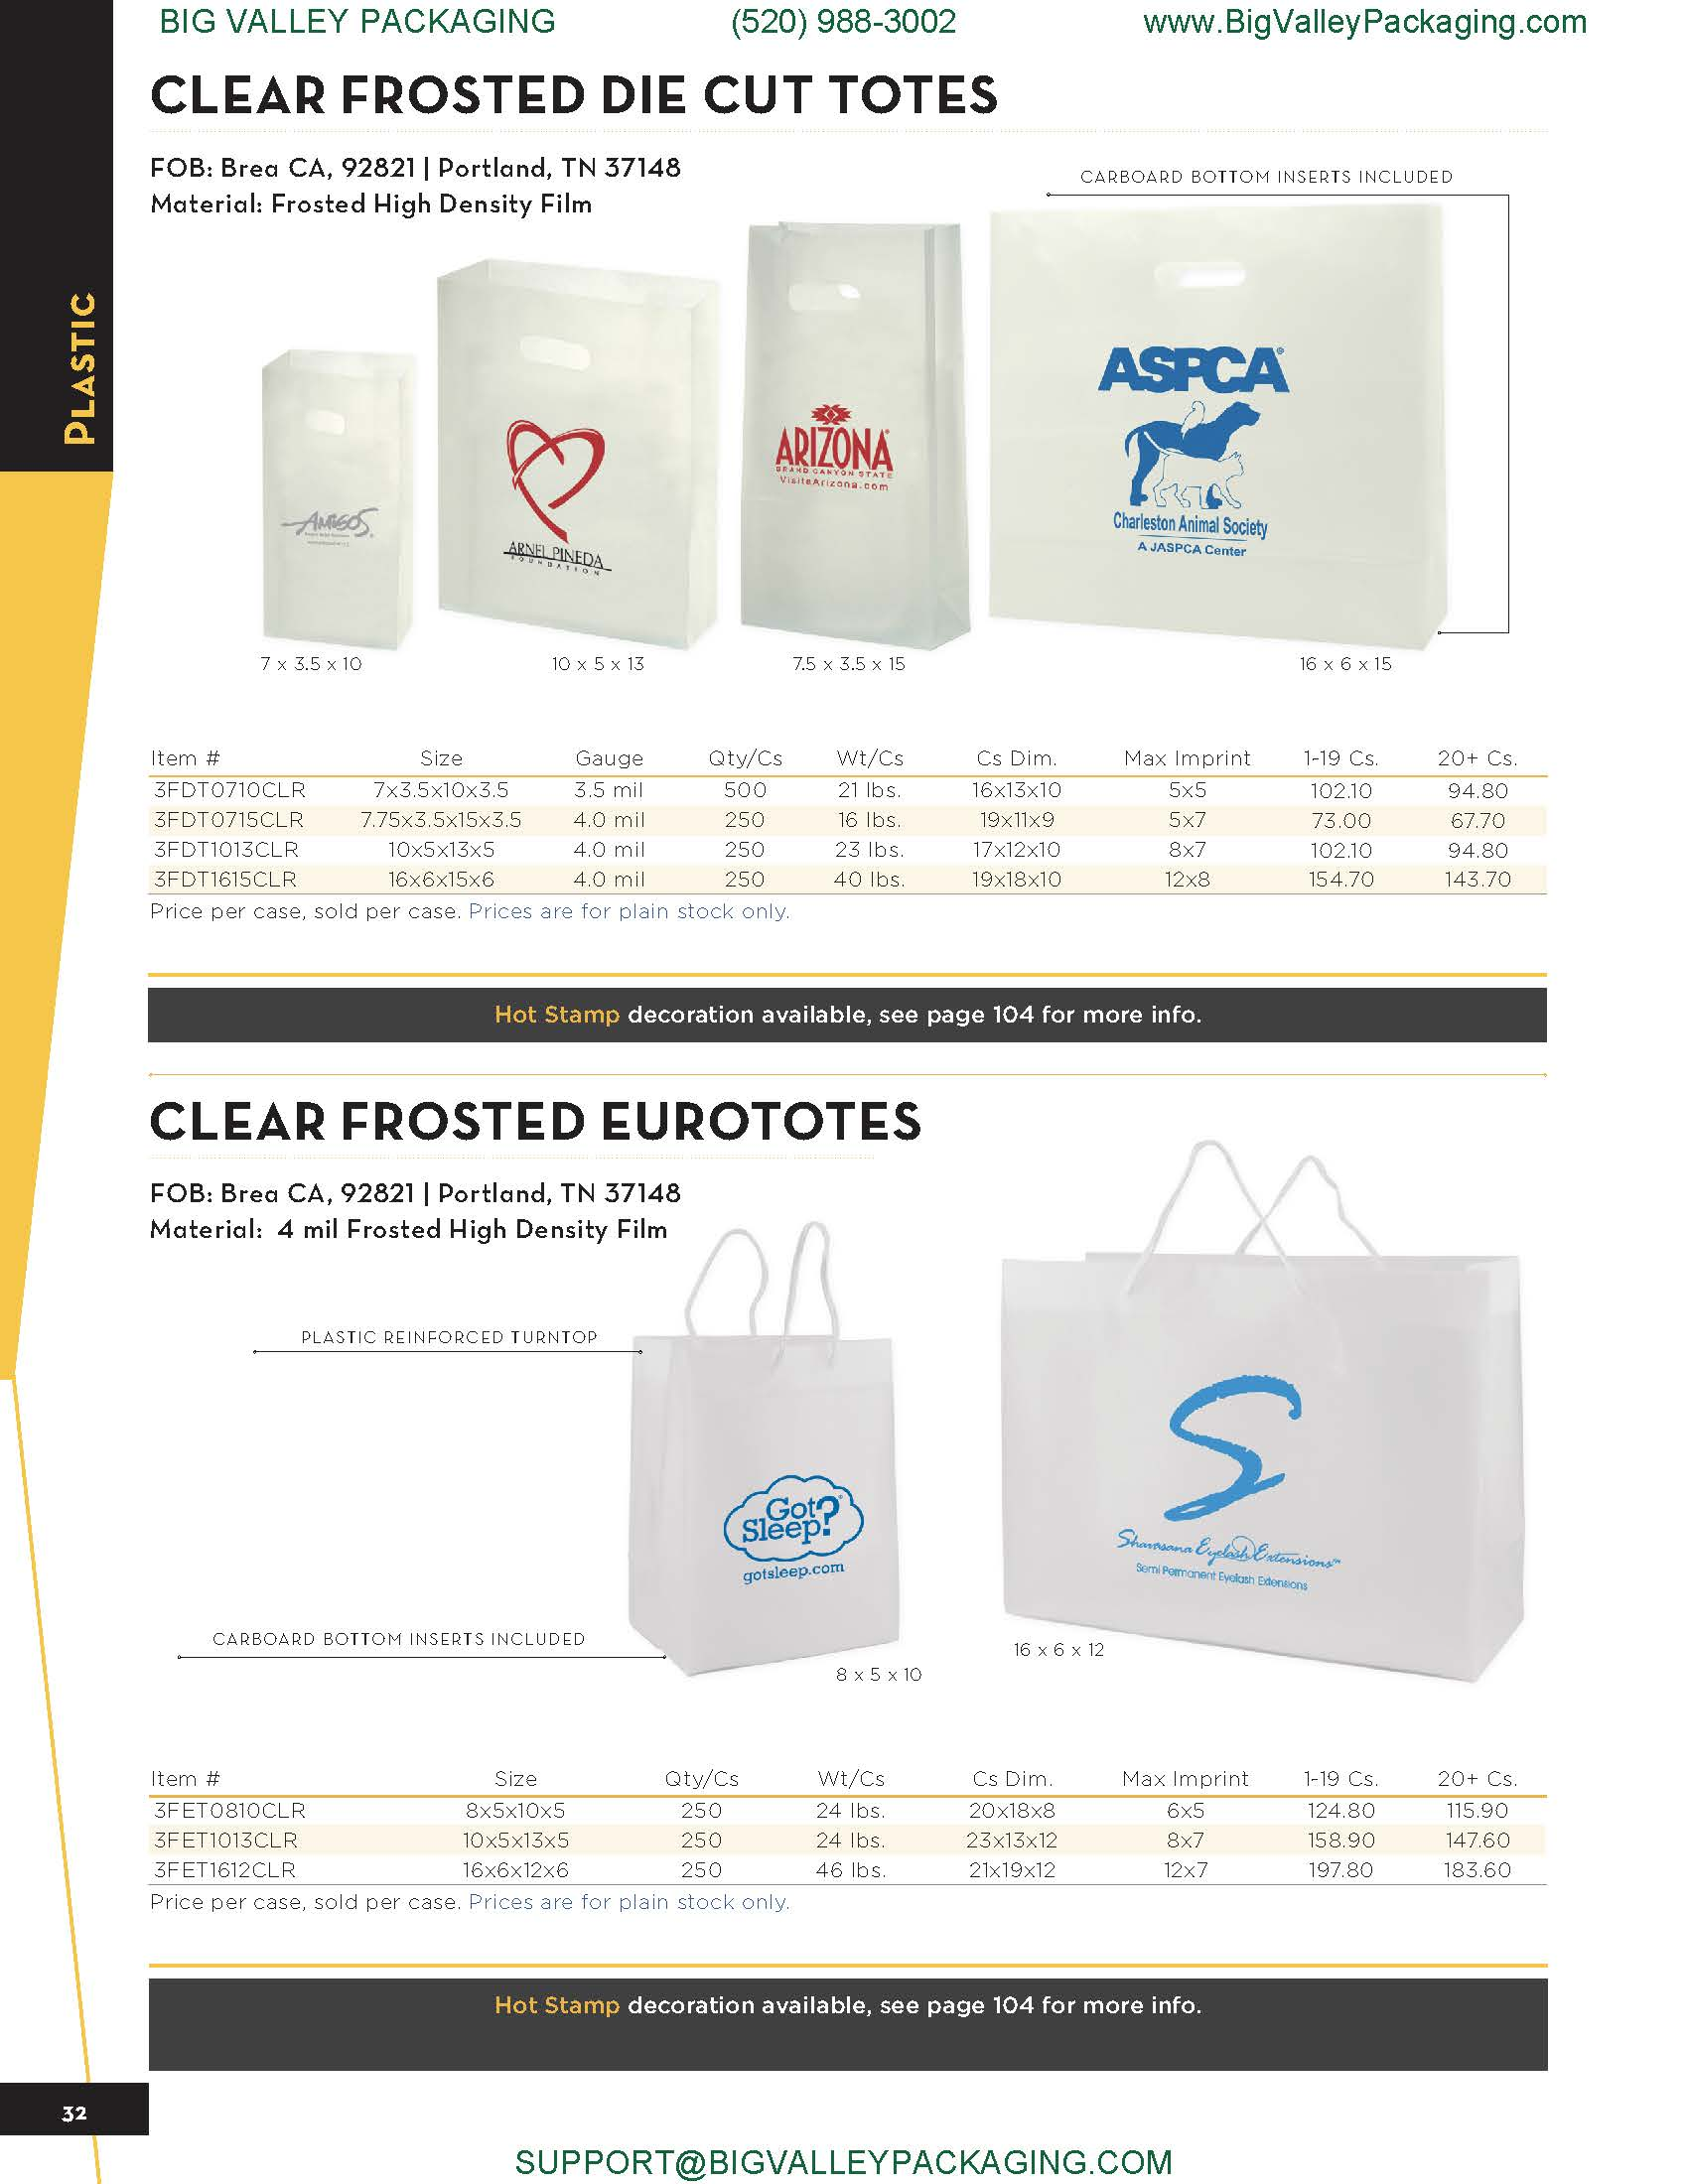 CLEAR FROSTED DIE CUT TOTES EURO